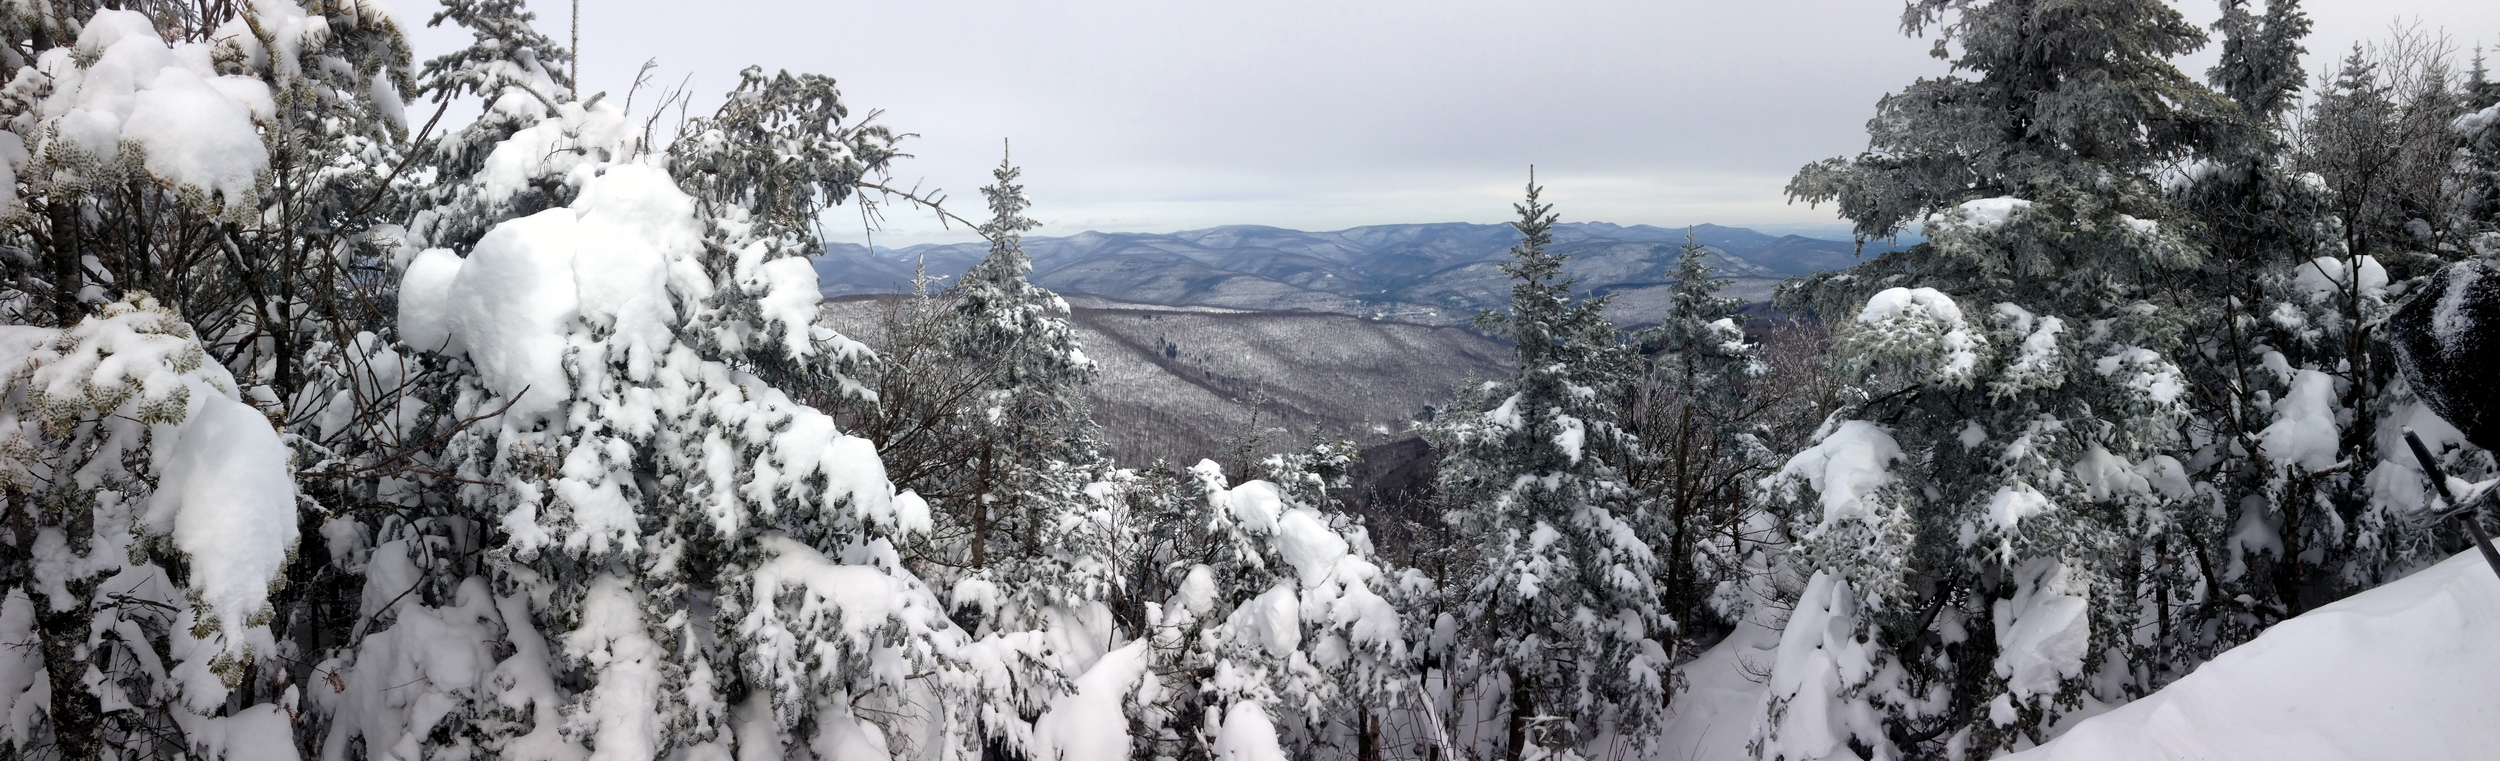 View from the summit of Panther Mountain